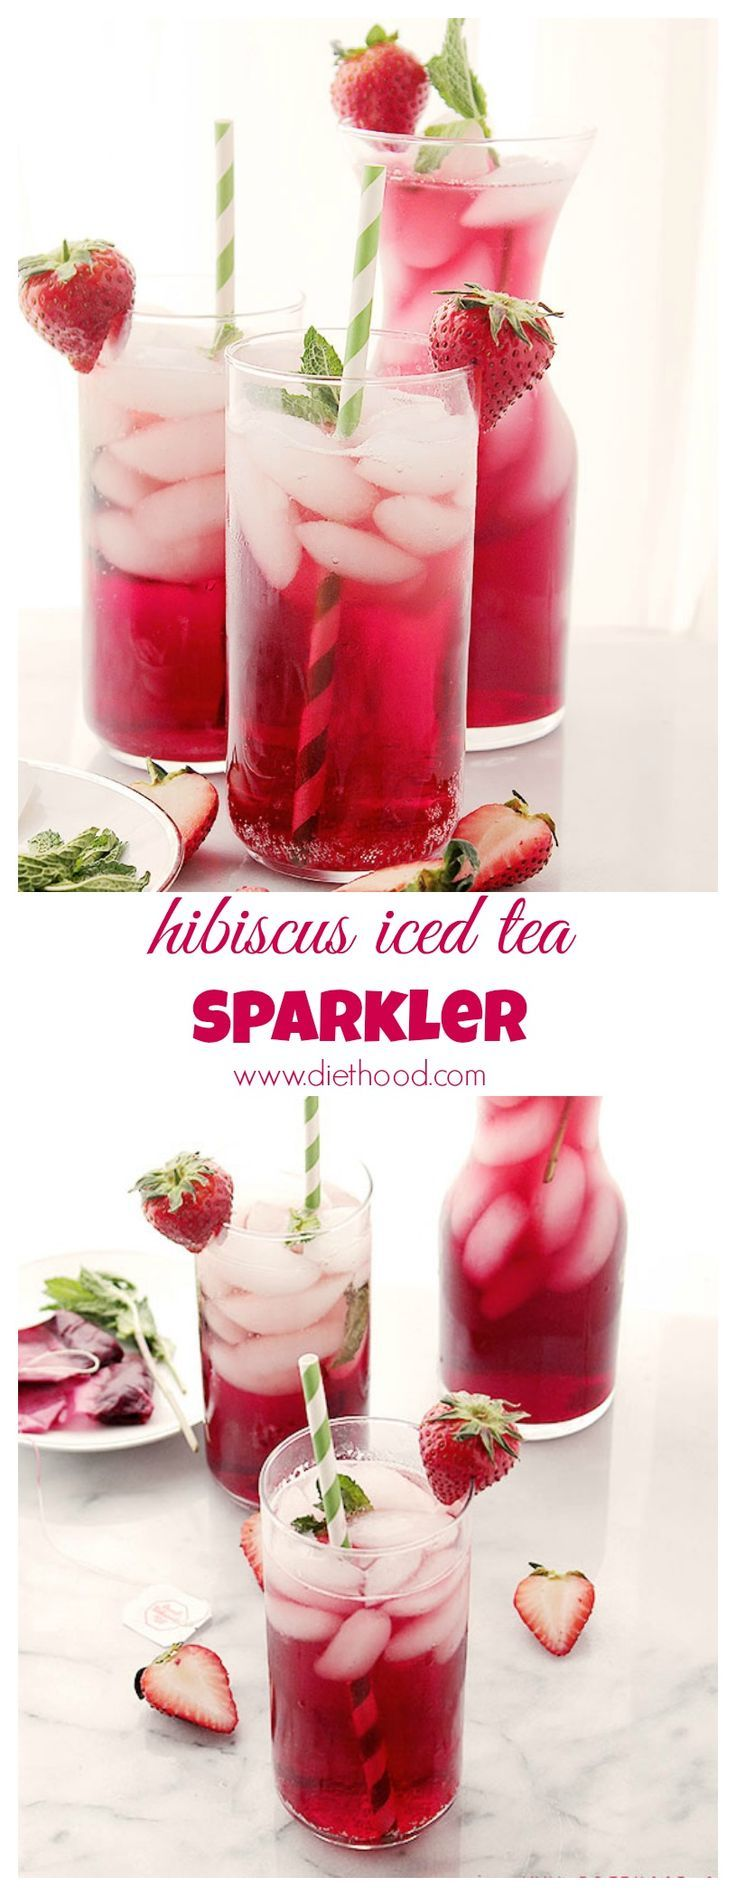 Hibiscus Iced Tea Sparkler | www.diethood.com | A very refreshing and delicious summer-drink made with hibiscus tea and sparkling water. | #drinks #recipe